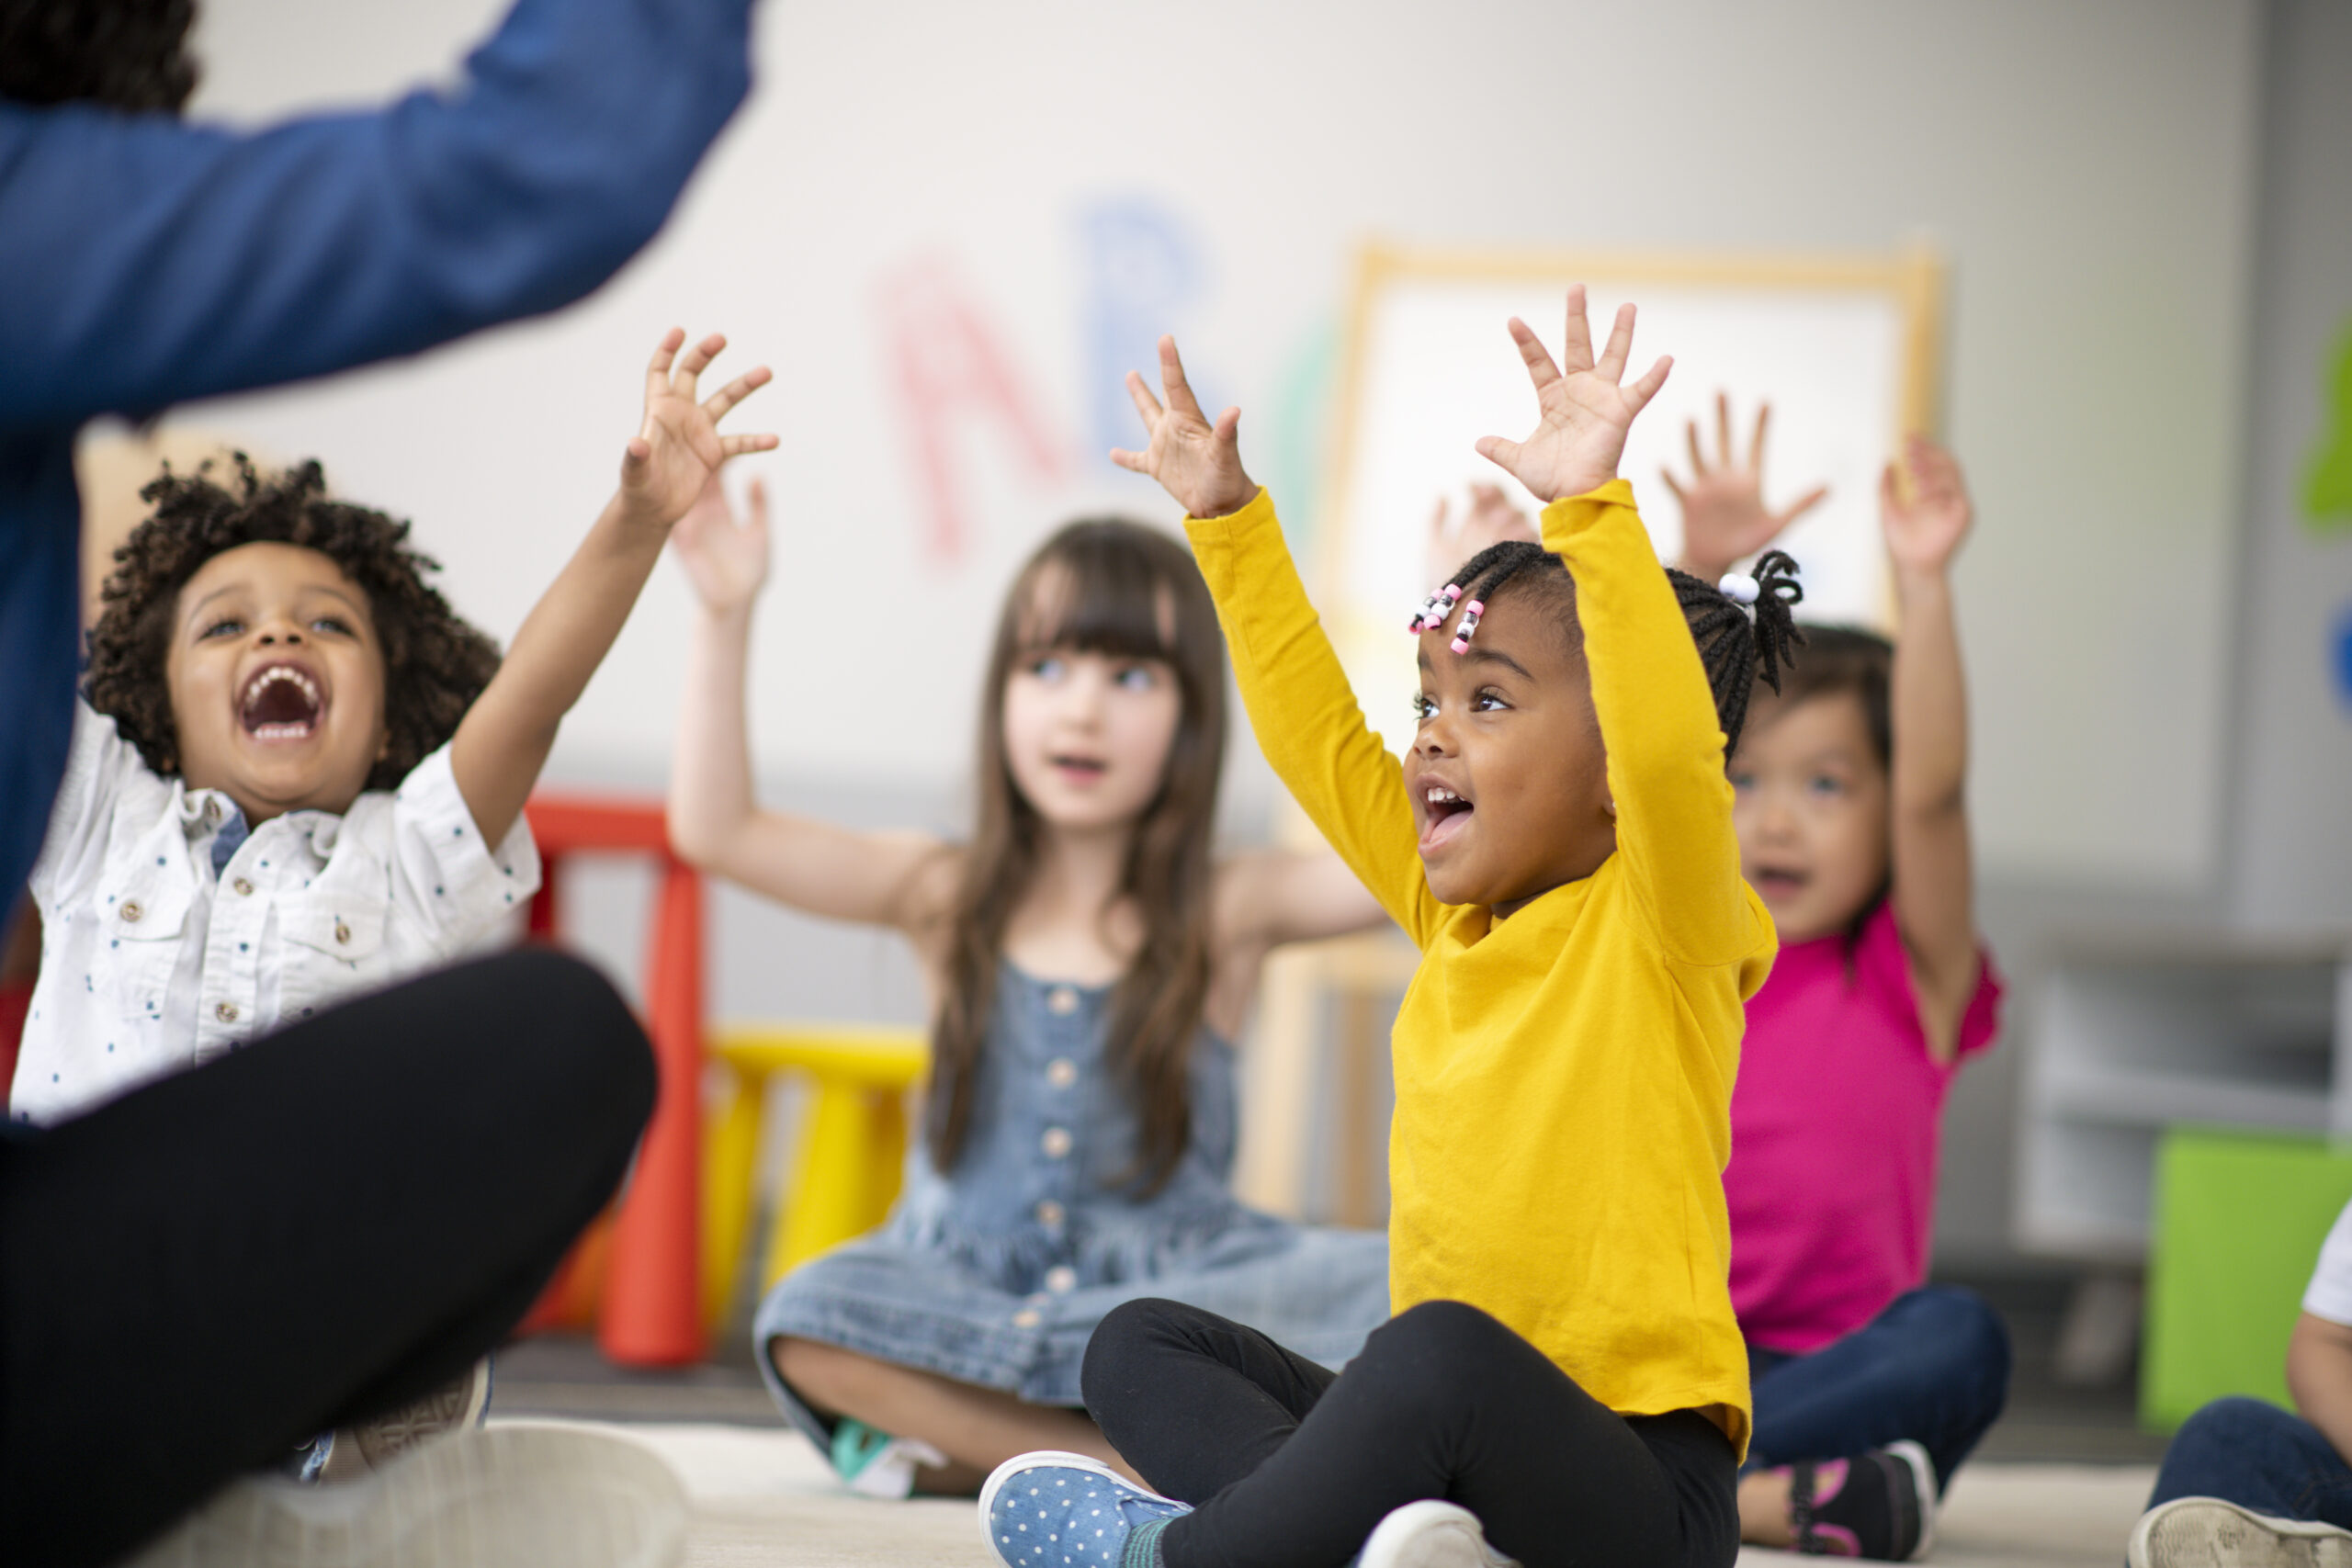 Multi-ethnic group of preschool students in class